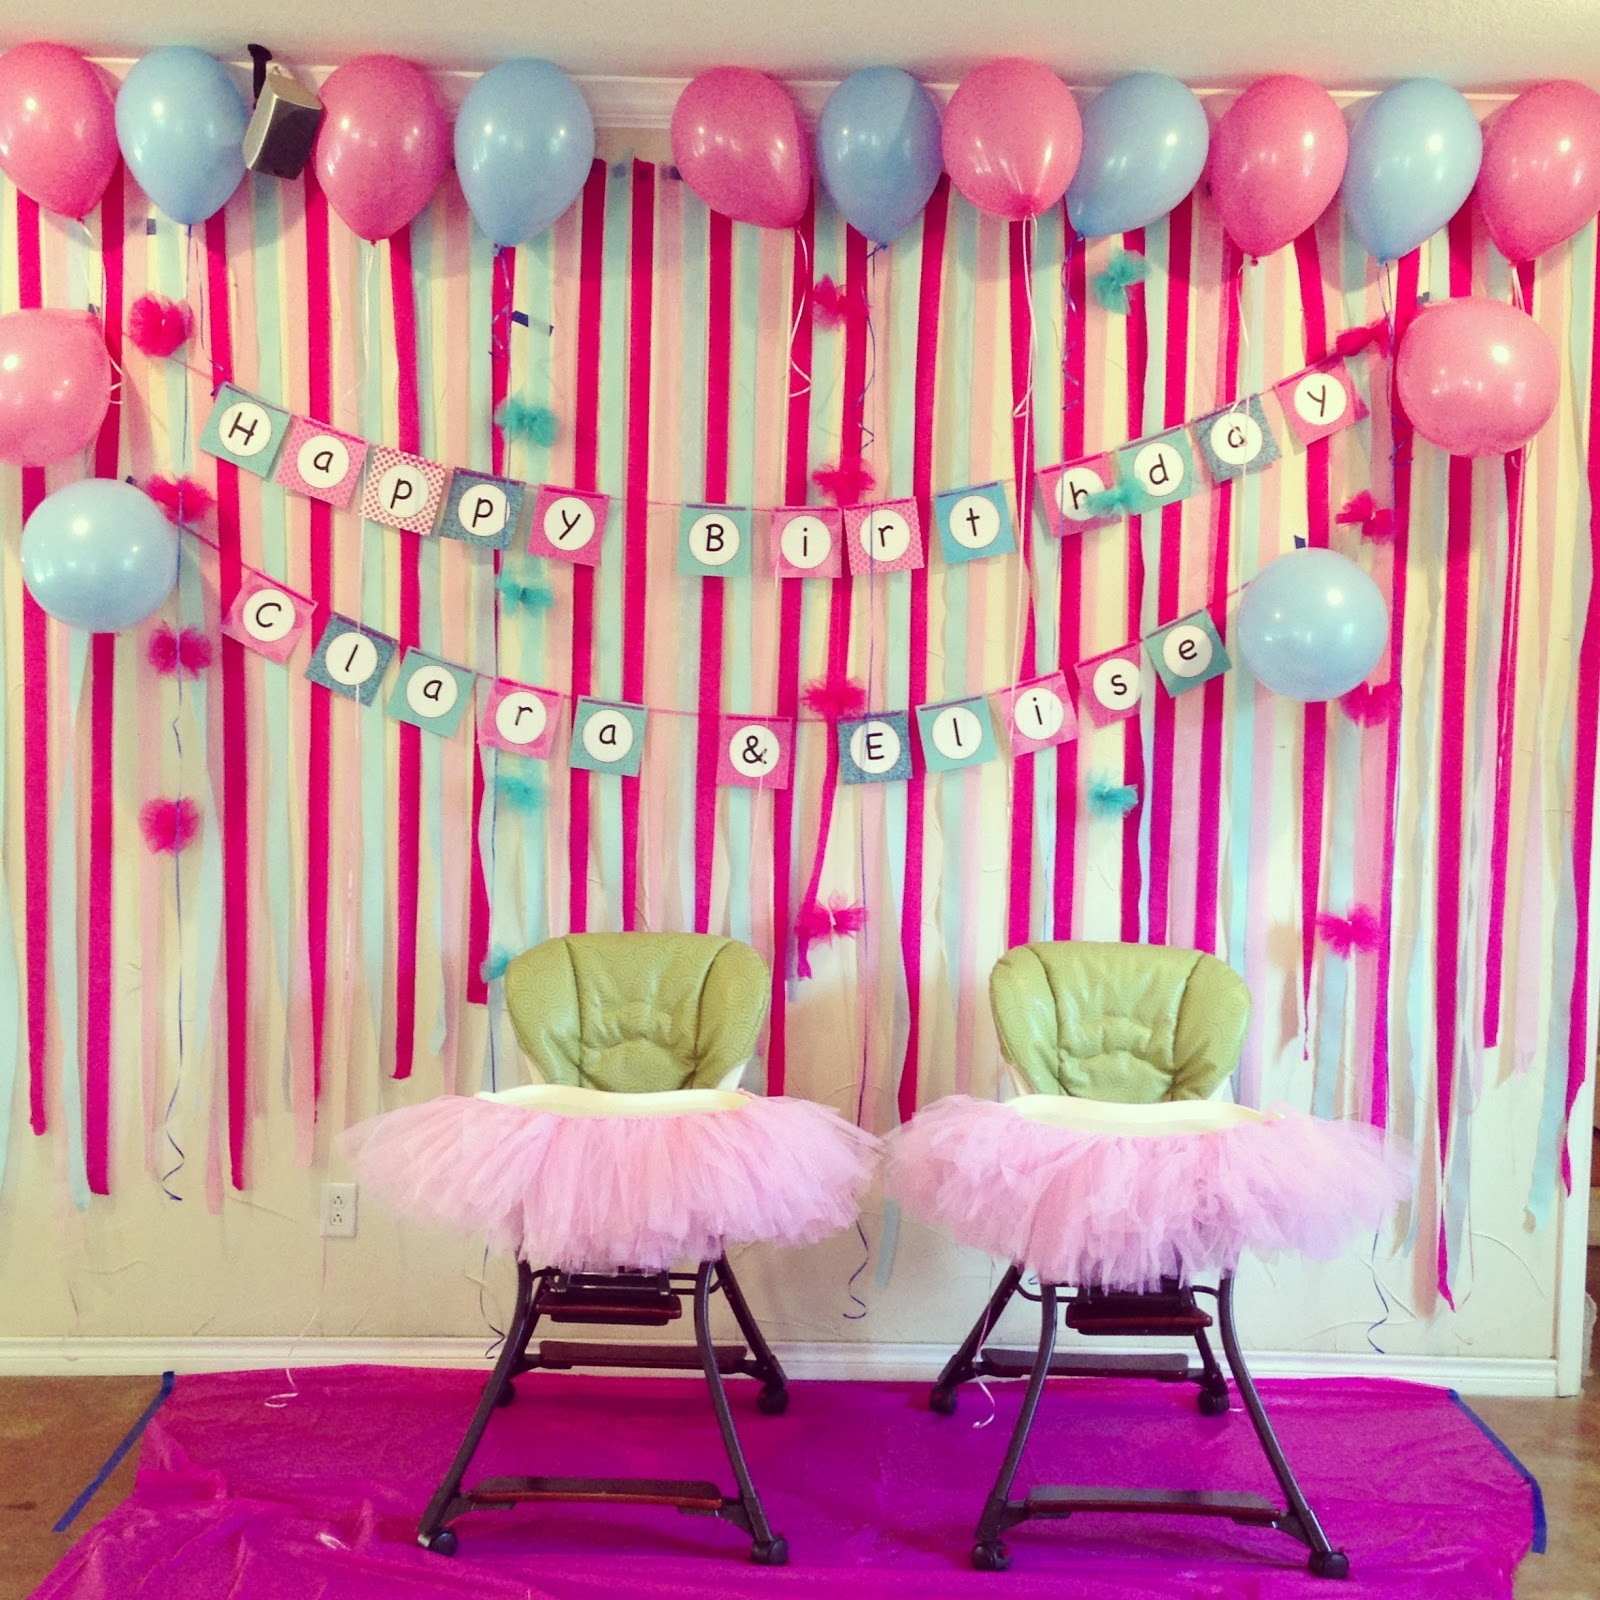 simple birthday decoration ; 1st-birthday-party-decorations-at-home-decoration-ideas-clipgoo-throughout-simple-birthday-decoration-for-kids-at-home